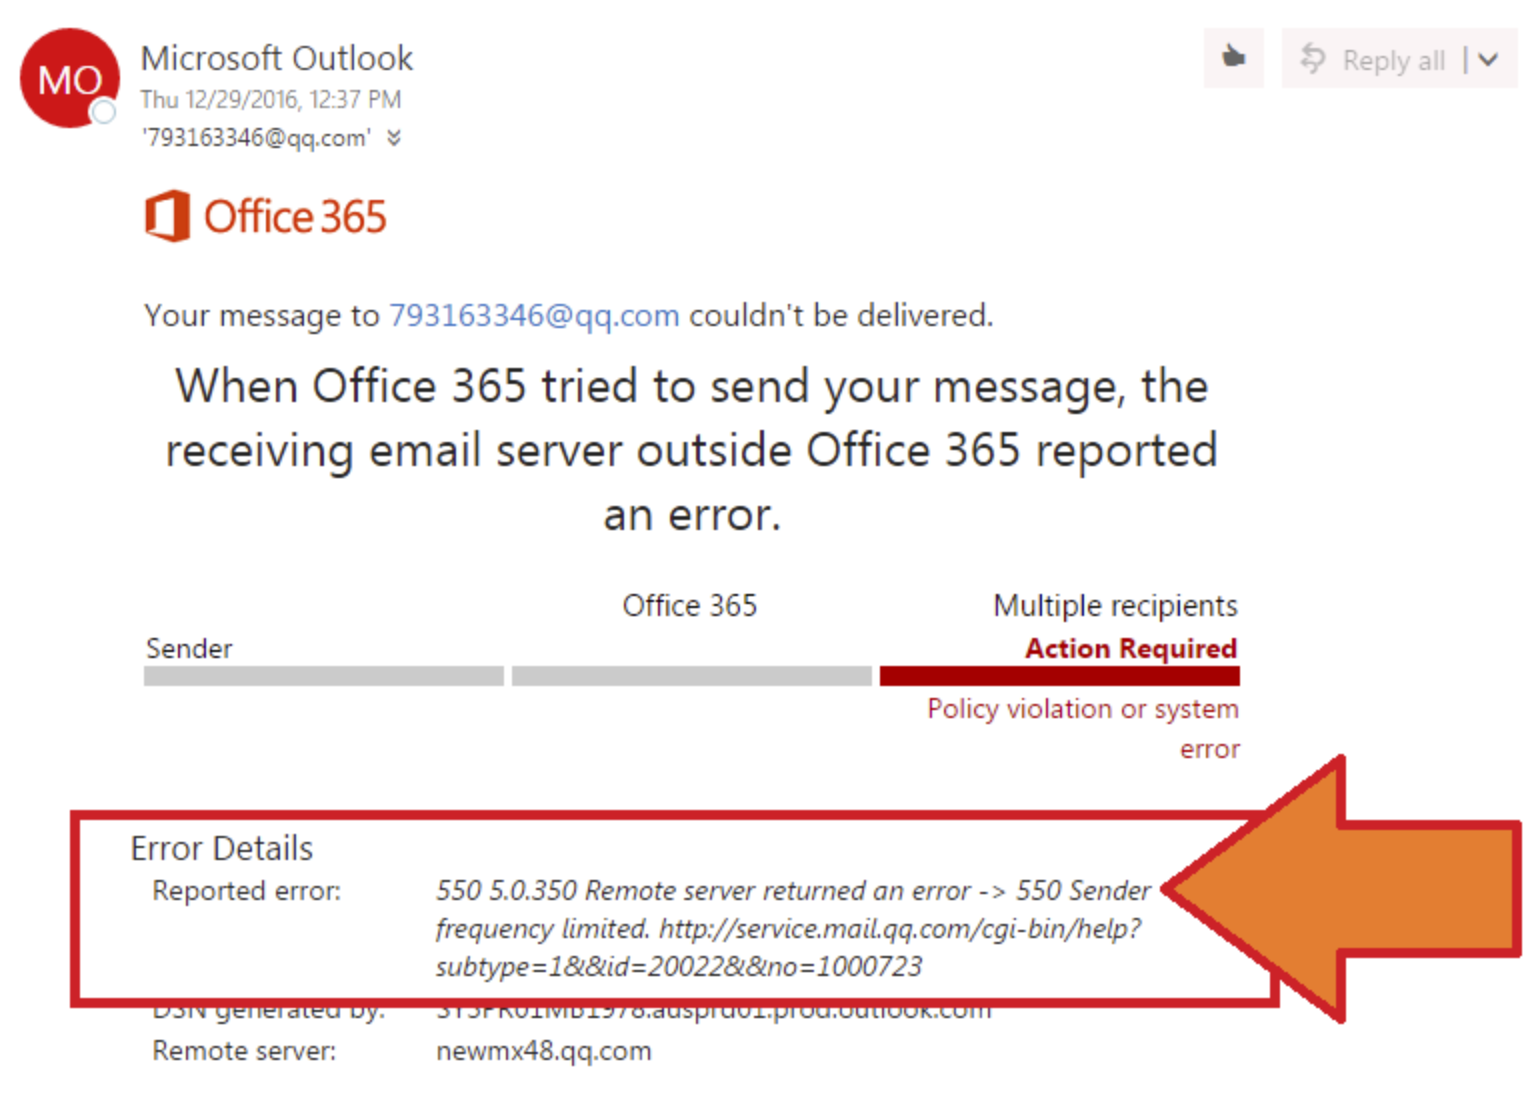 Your message to XXX couldn't be delivered. When Office 365 tried to send your message, the receiving email server outside Office 365 reported an error. Reported error: 550 5.0.350 Remote server returned an error -> 550 Serner frequency limited.